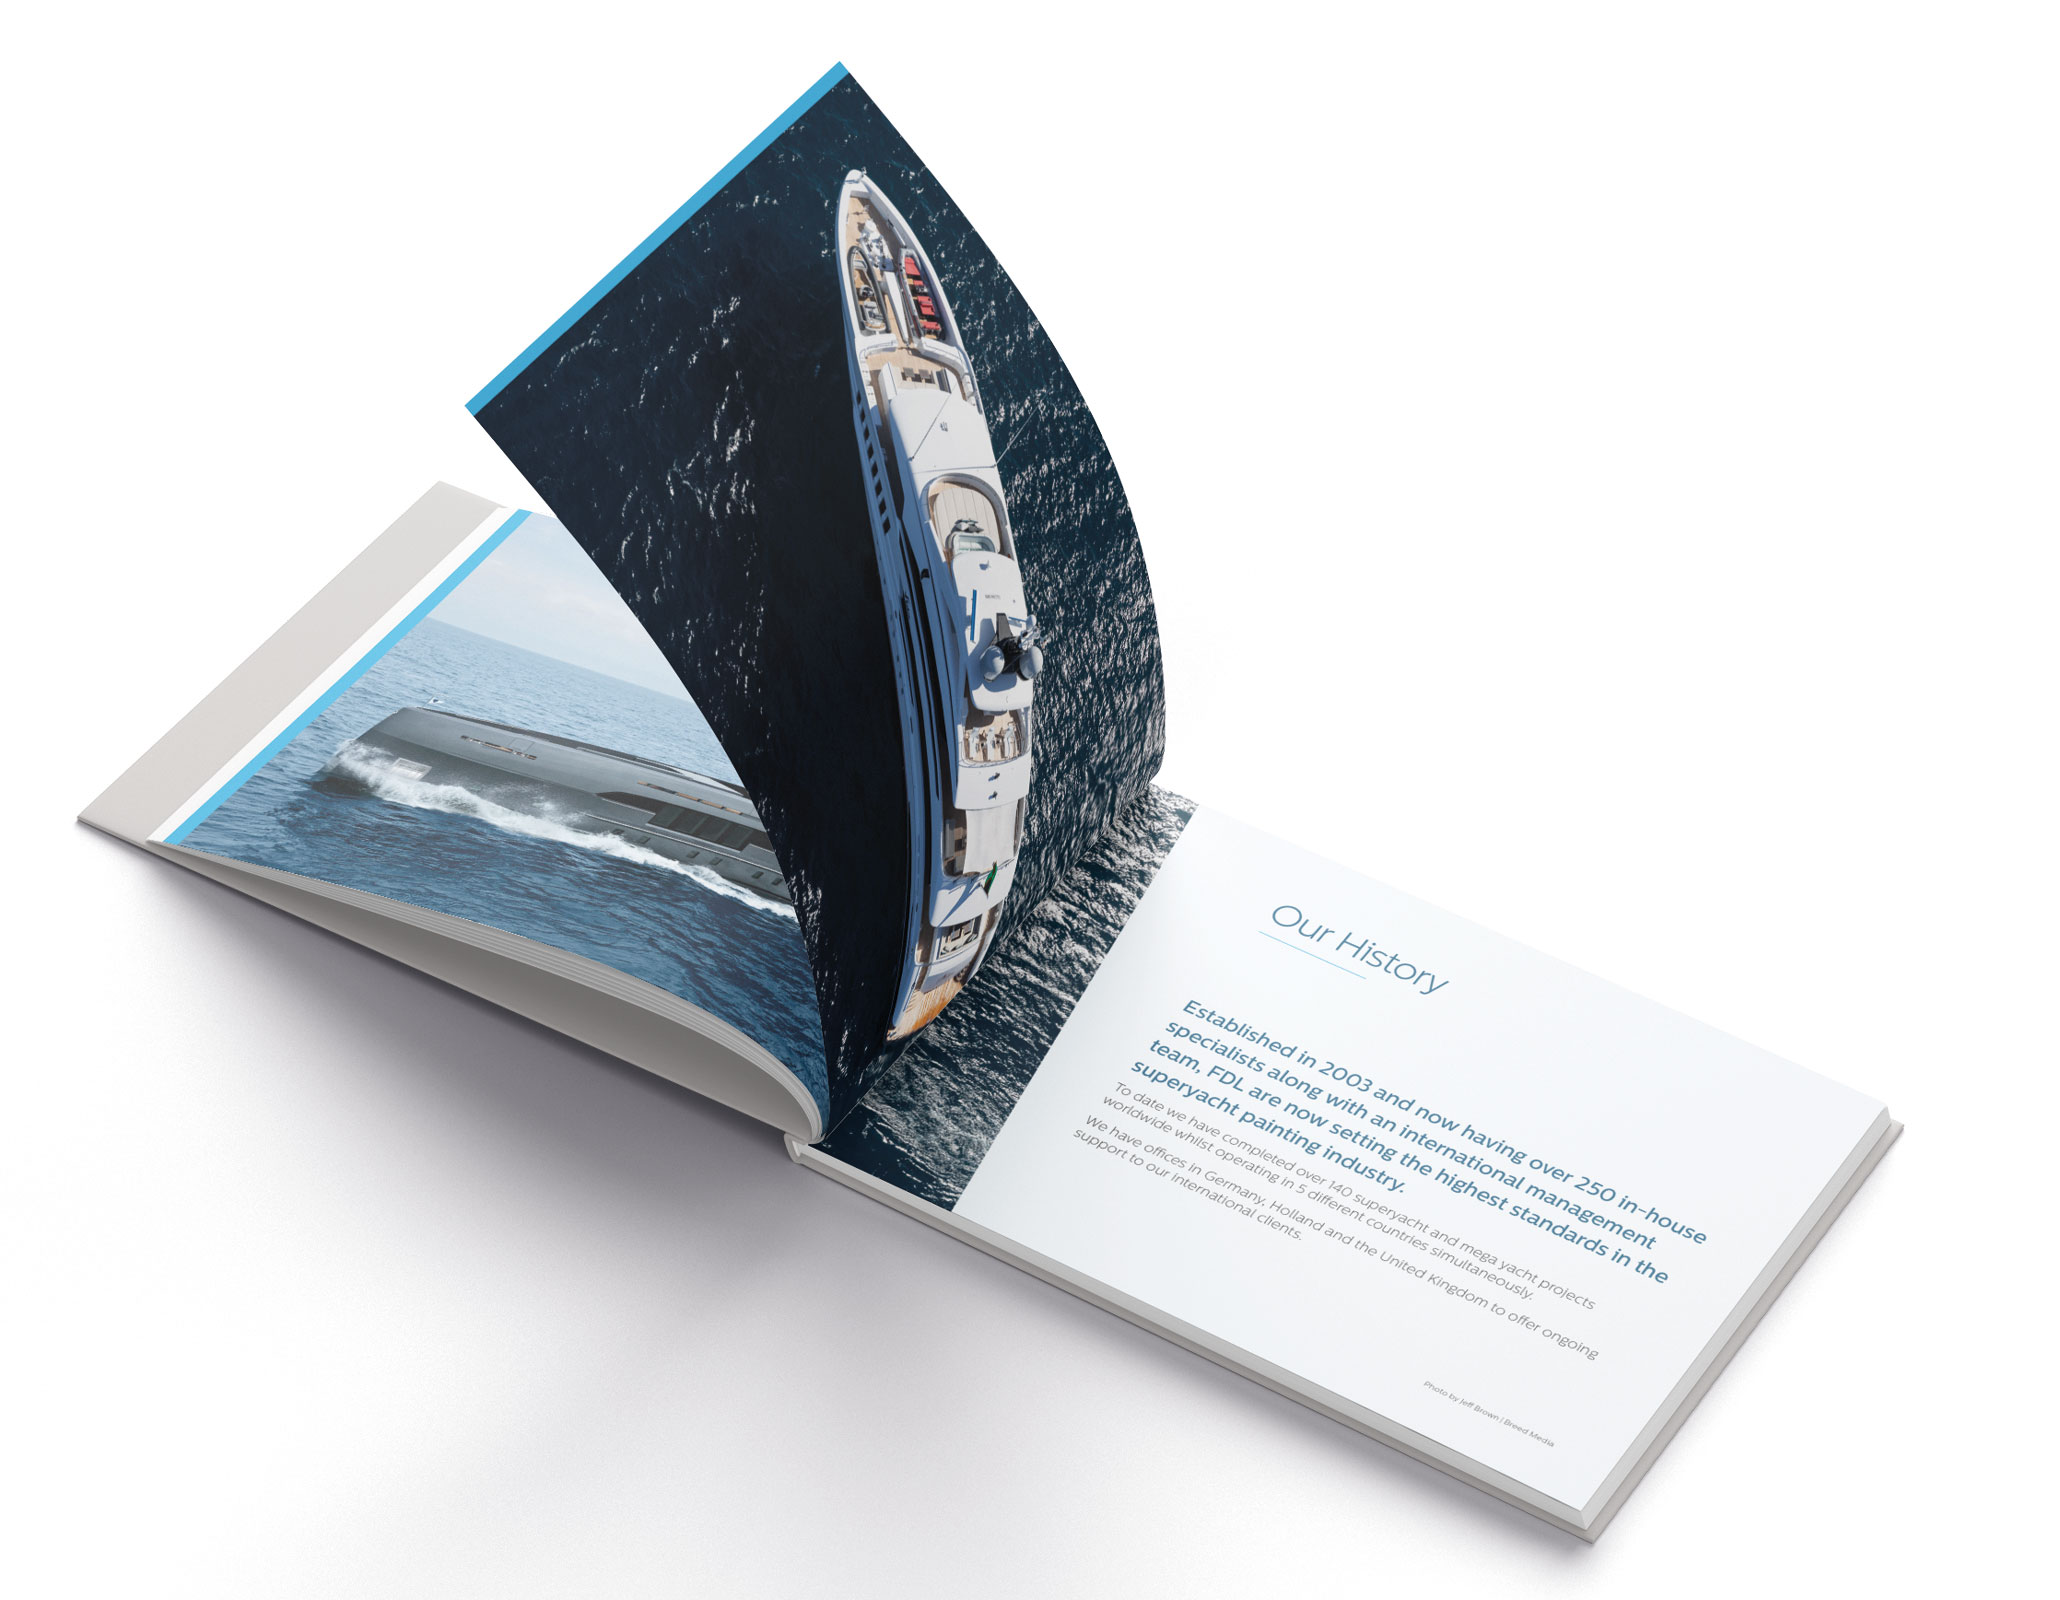 Finishing DeLuxe printed book / brochure design in Cornwall by thstudio